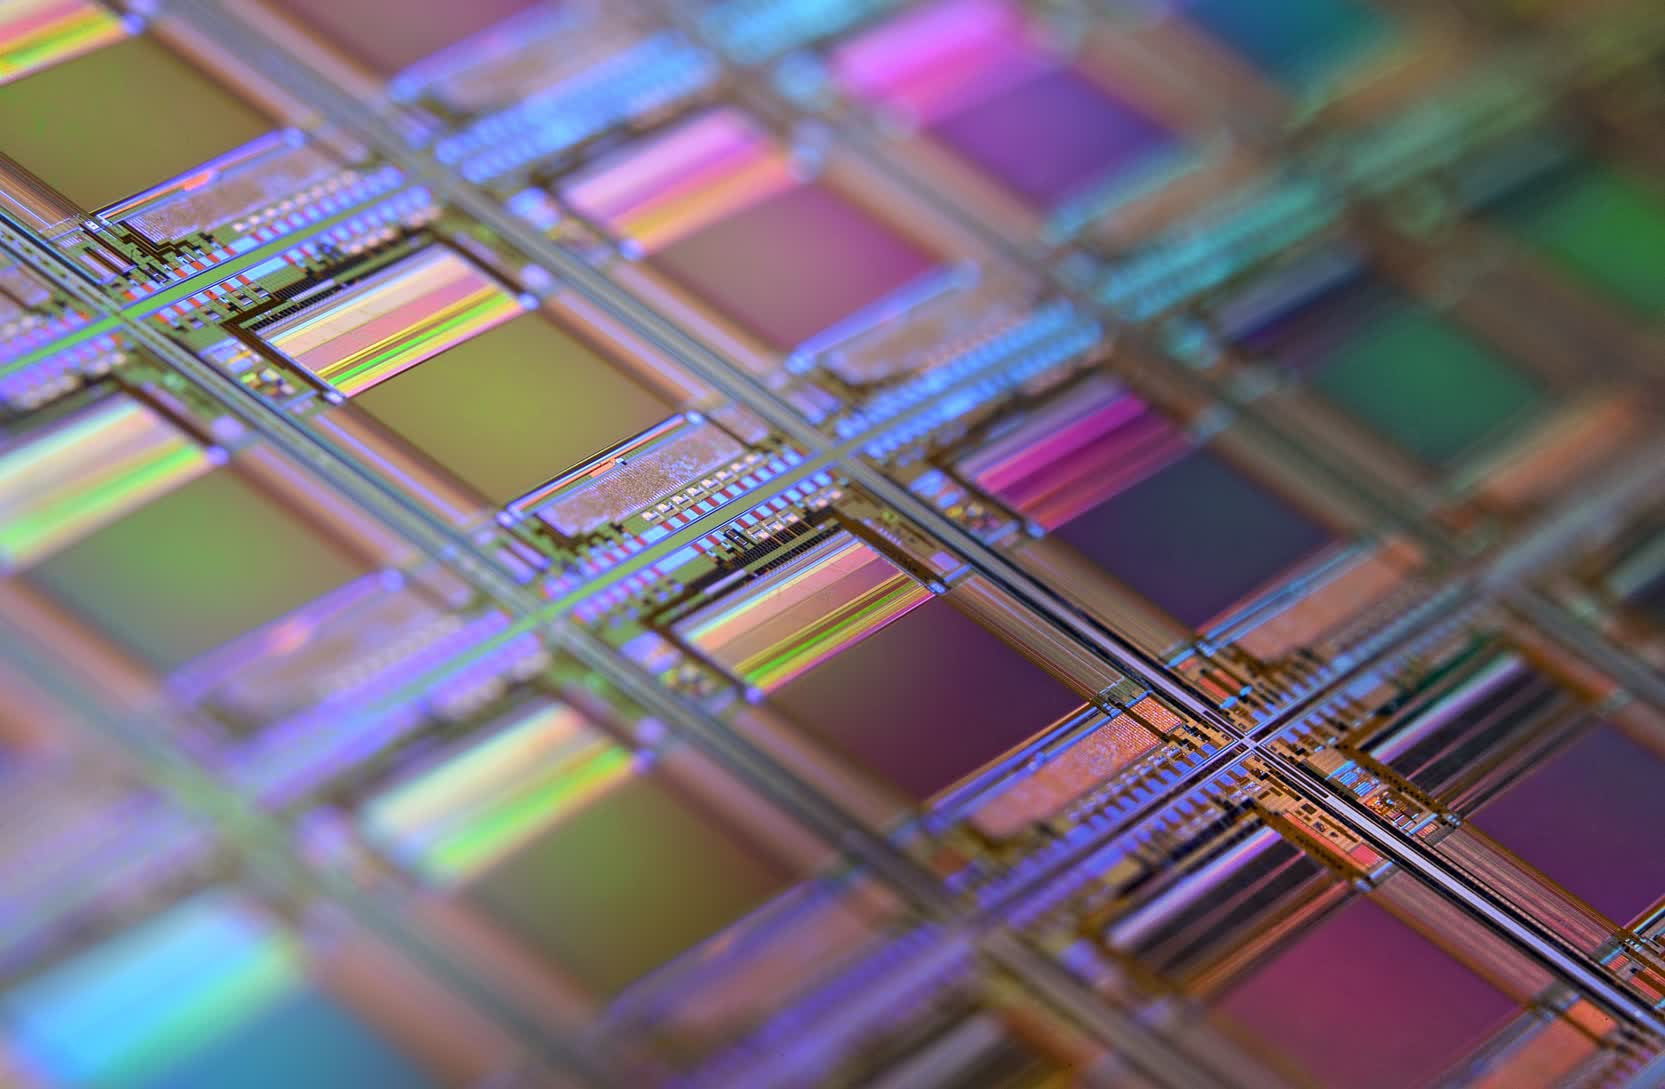 TSMC chairman claims some companies are sitting on chip stockpiles